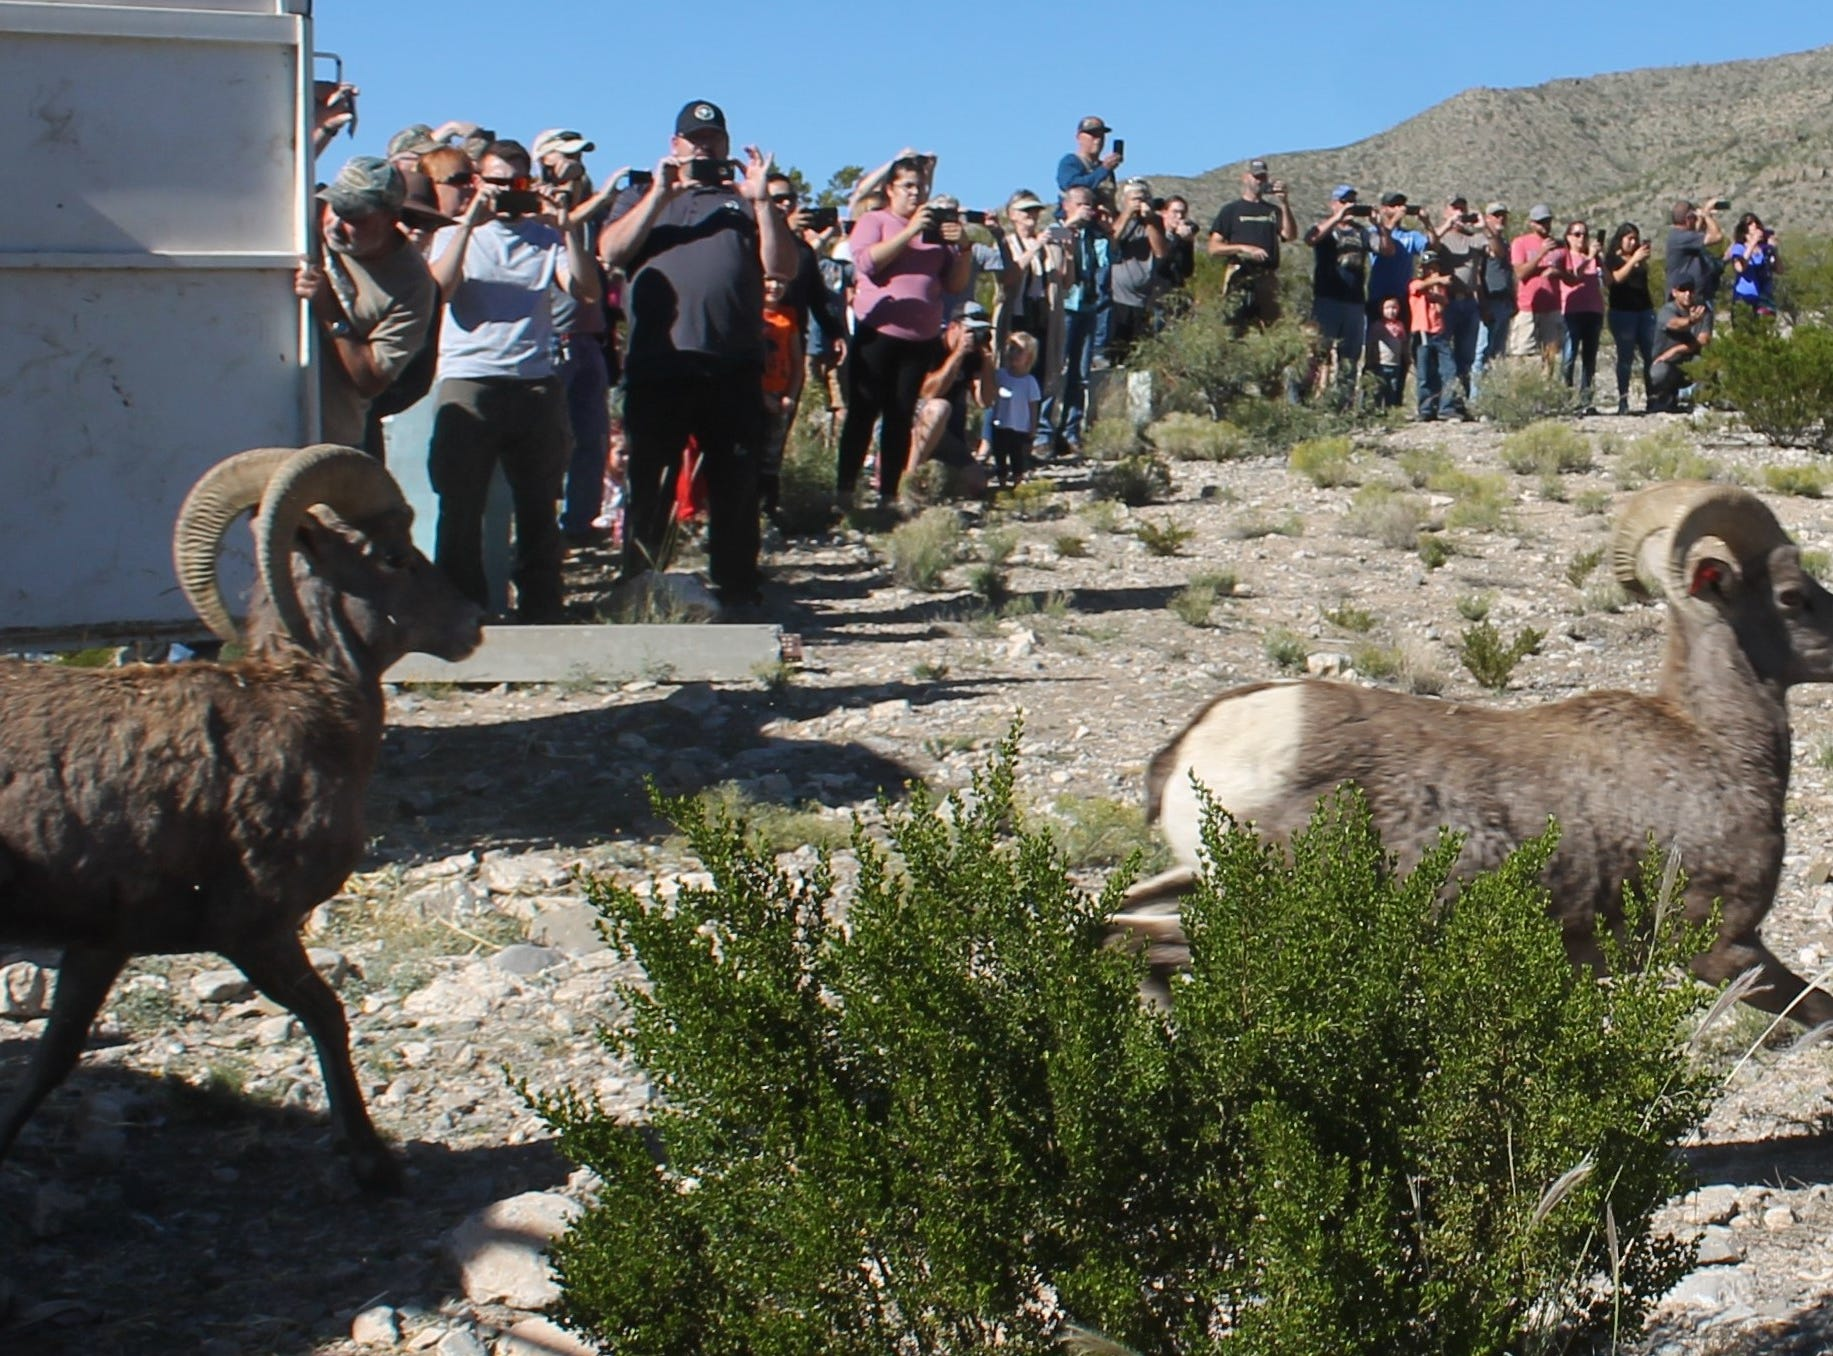 The New Mexico Game and Fish Department relocated about 40 bighorn sheep into the Sacramento Mountain in an area behind the Space Museum Saturday and Sunday.